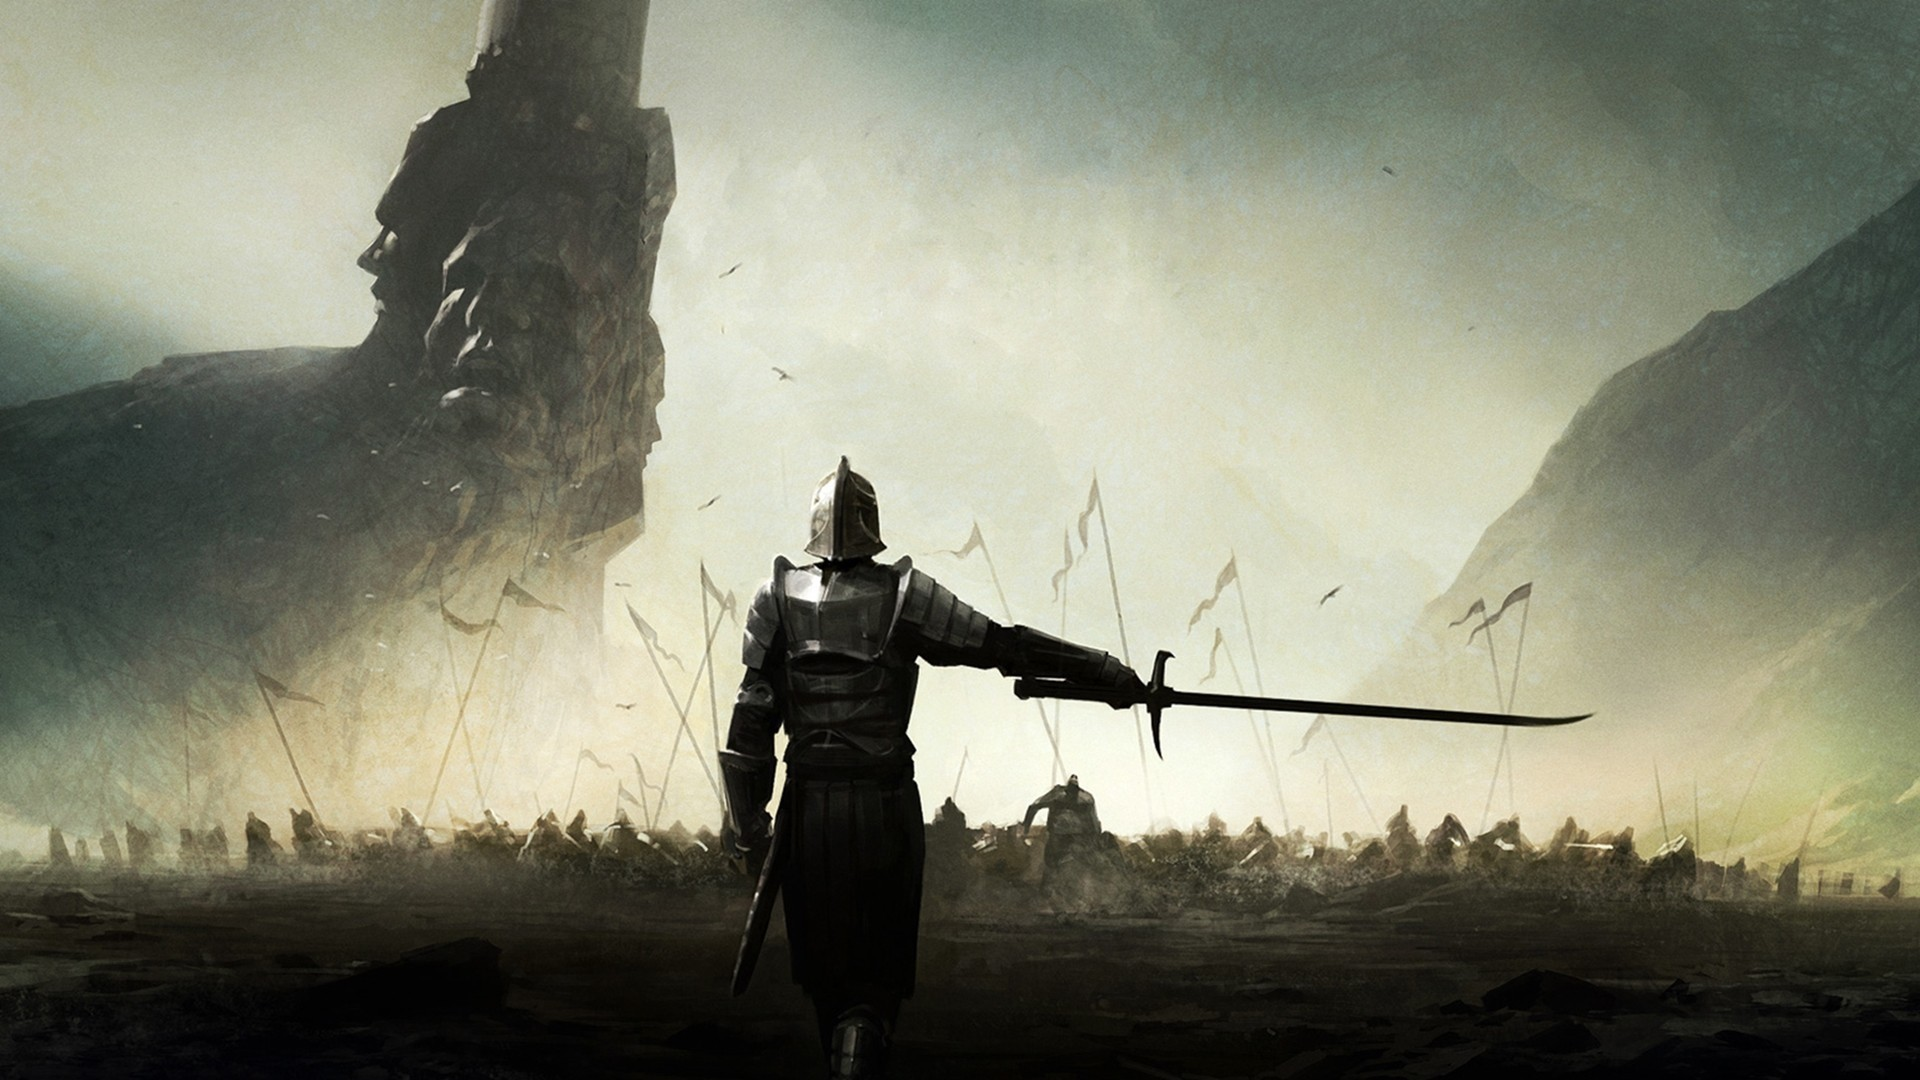 Medieval Wallpaper for pc